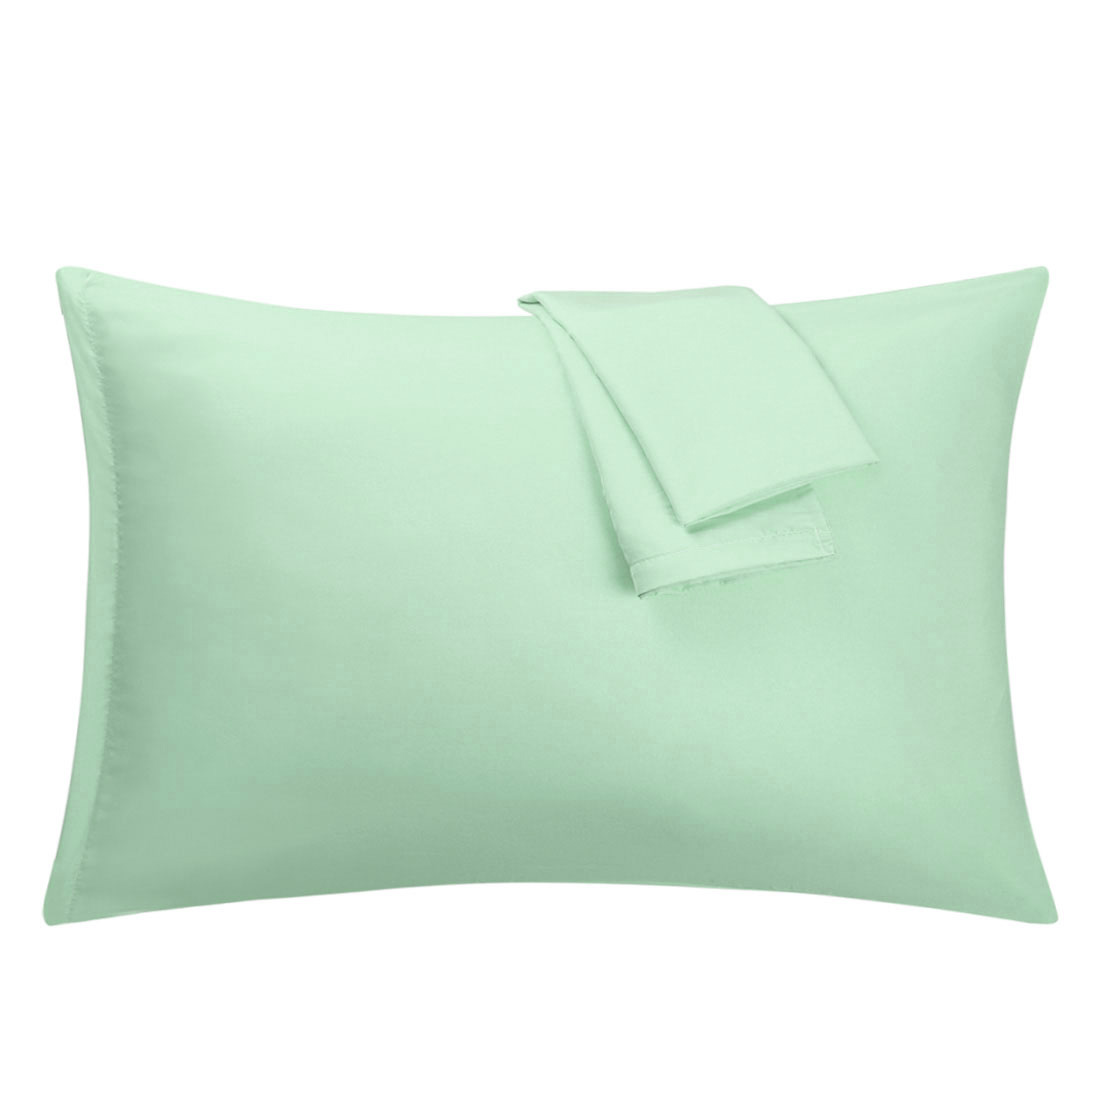 Spa Blue Pillowcases Soft Microfiber Pillow Case with Zipper King, 2 Pack